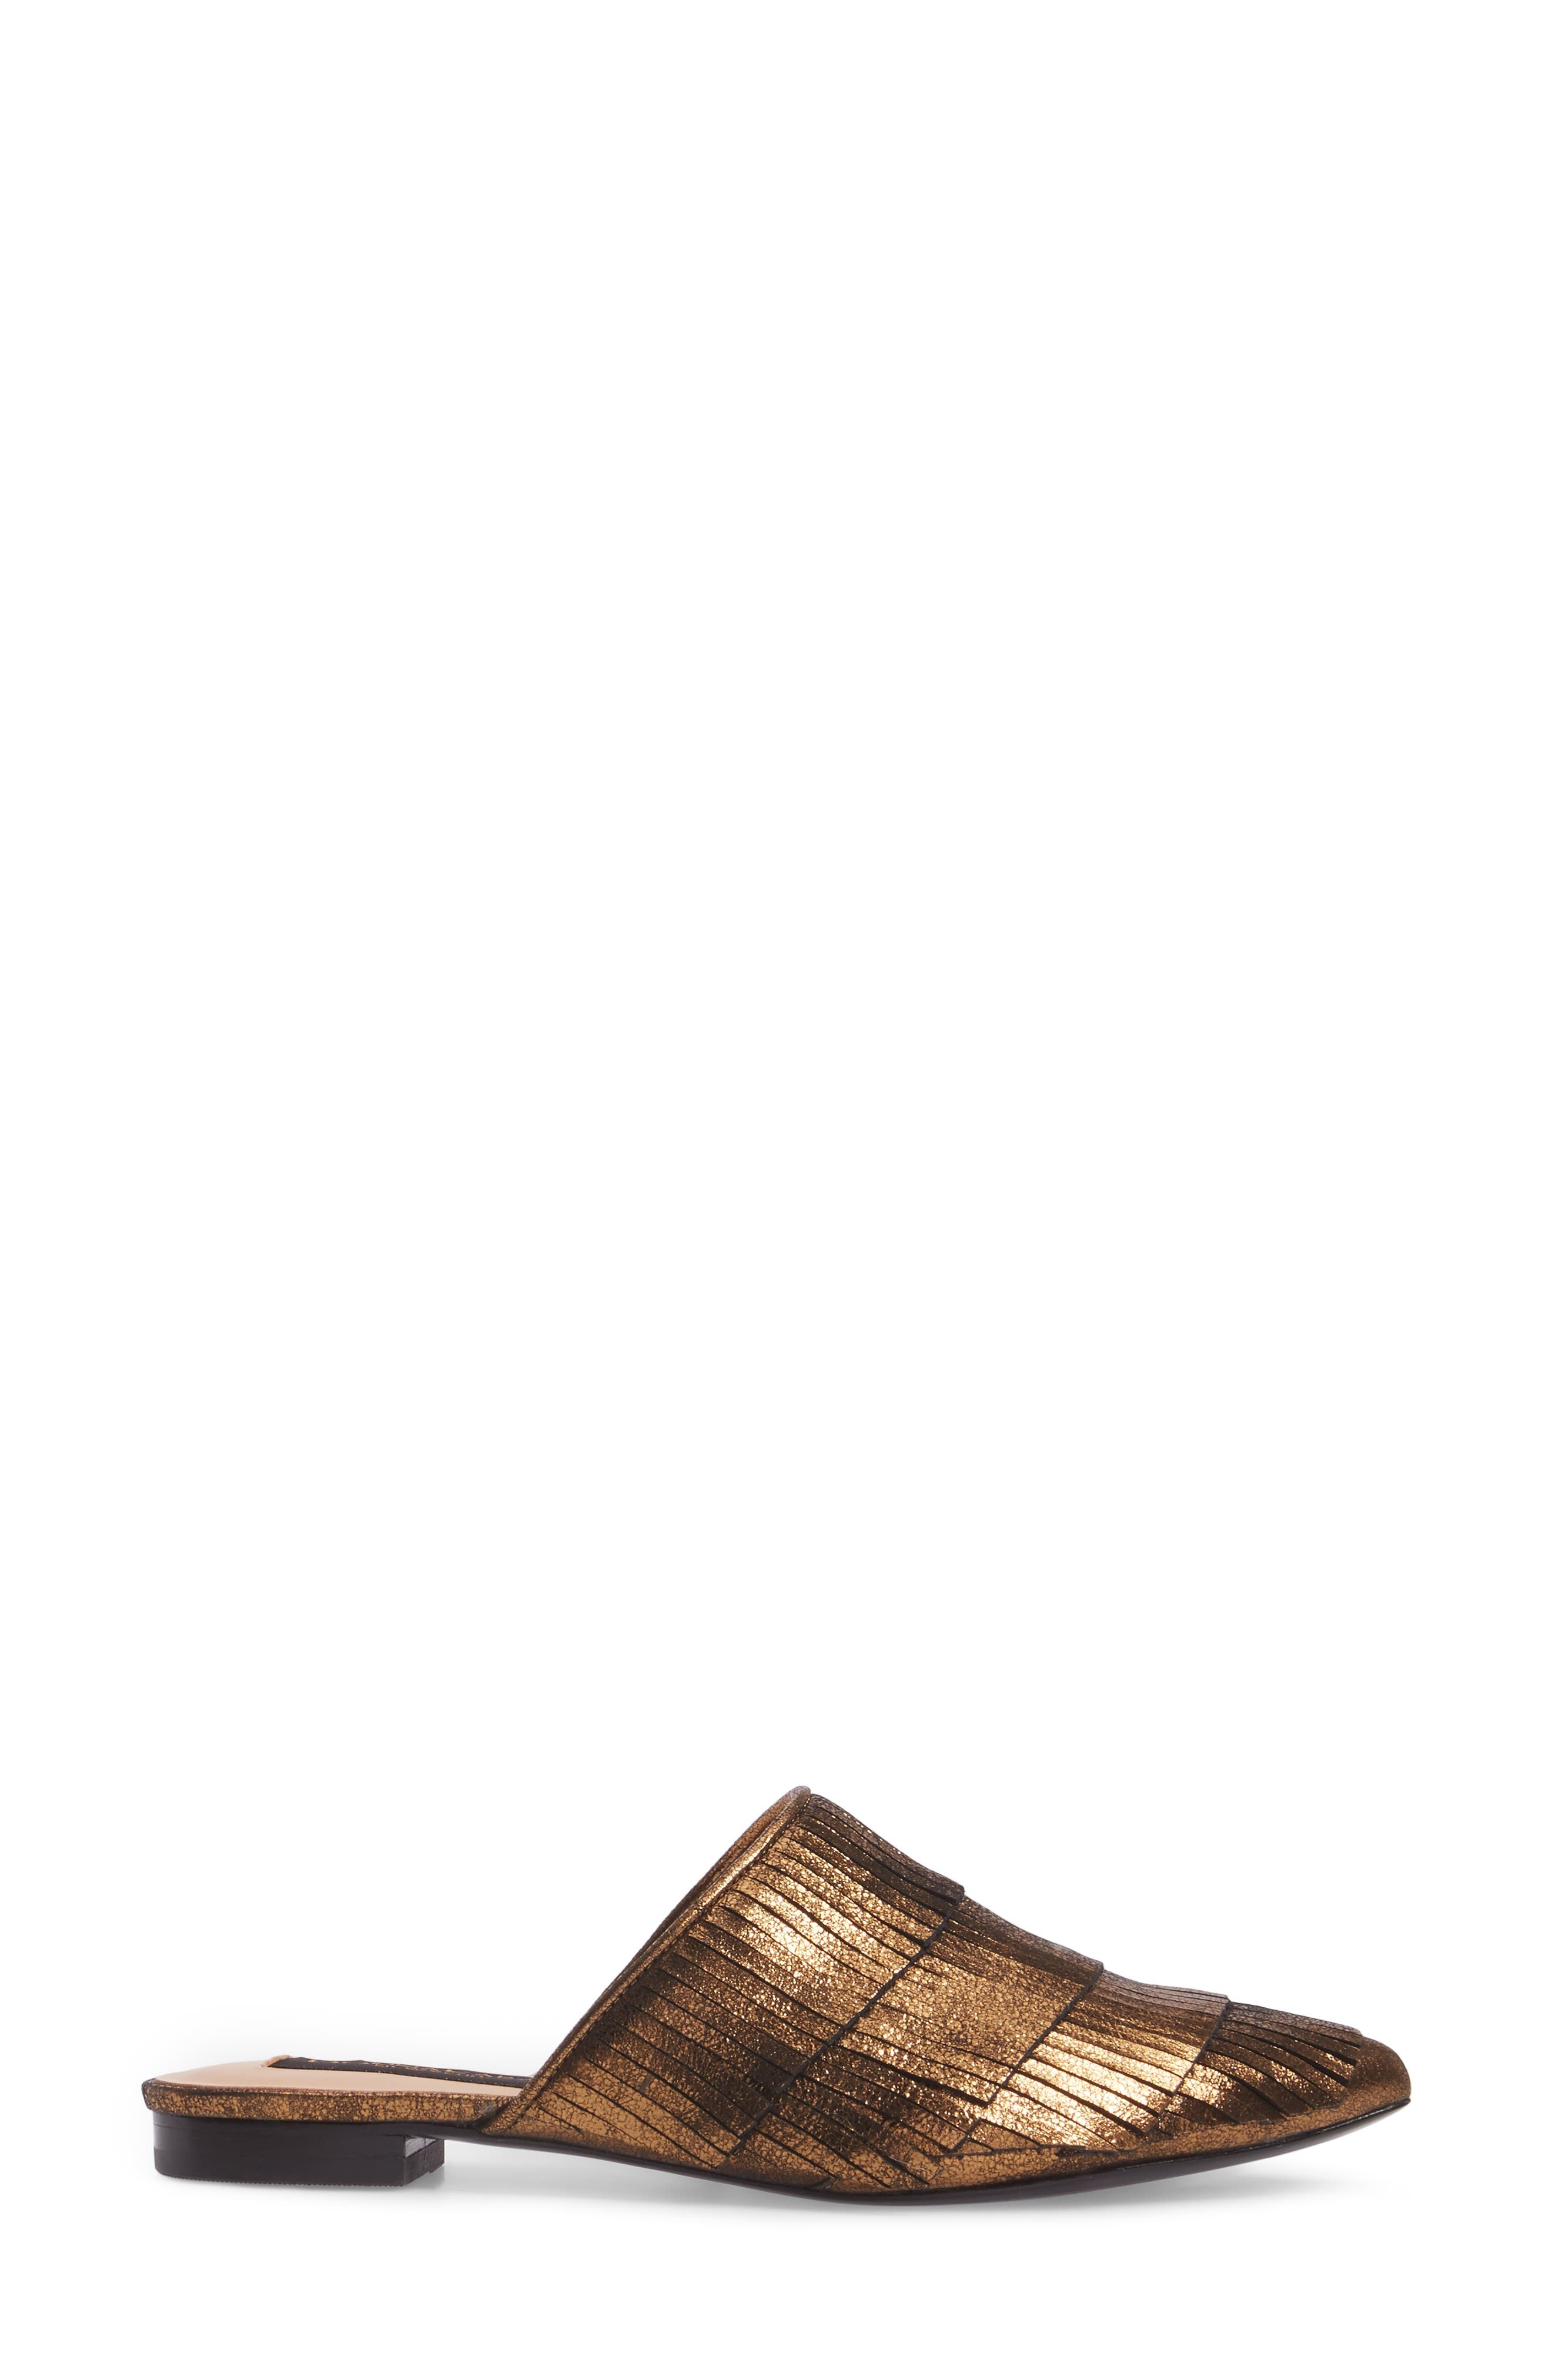 Donna Karan Paisley Fringe Mule,                             Alternate thumbnail 3, color,                             Brass Leather